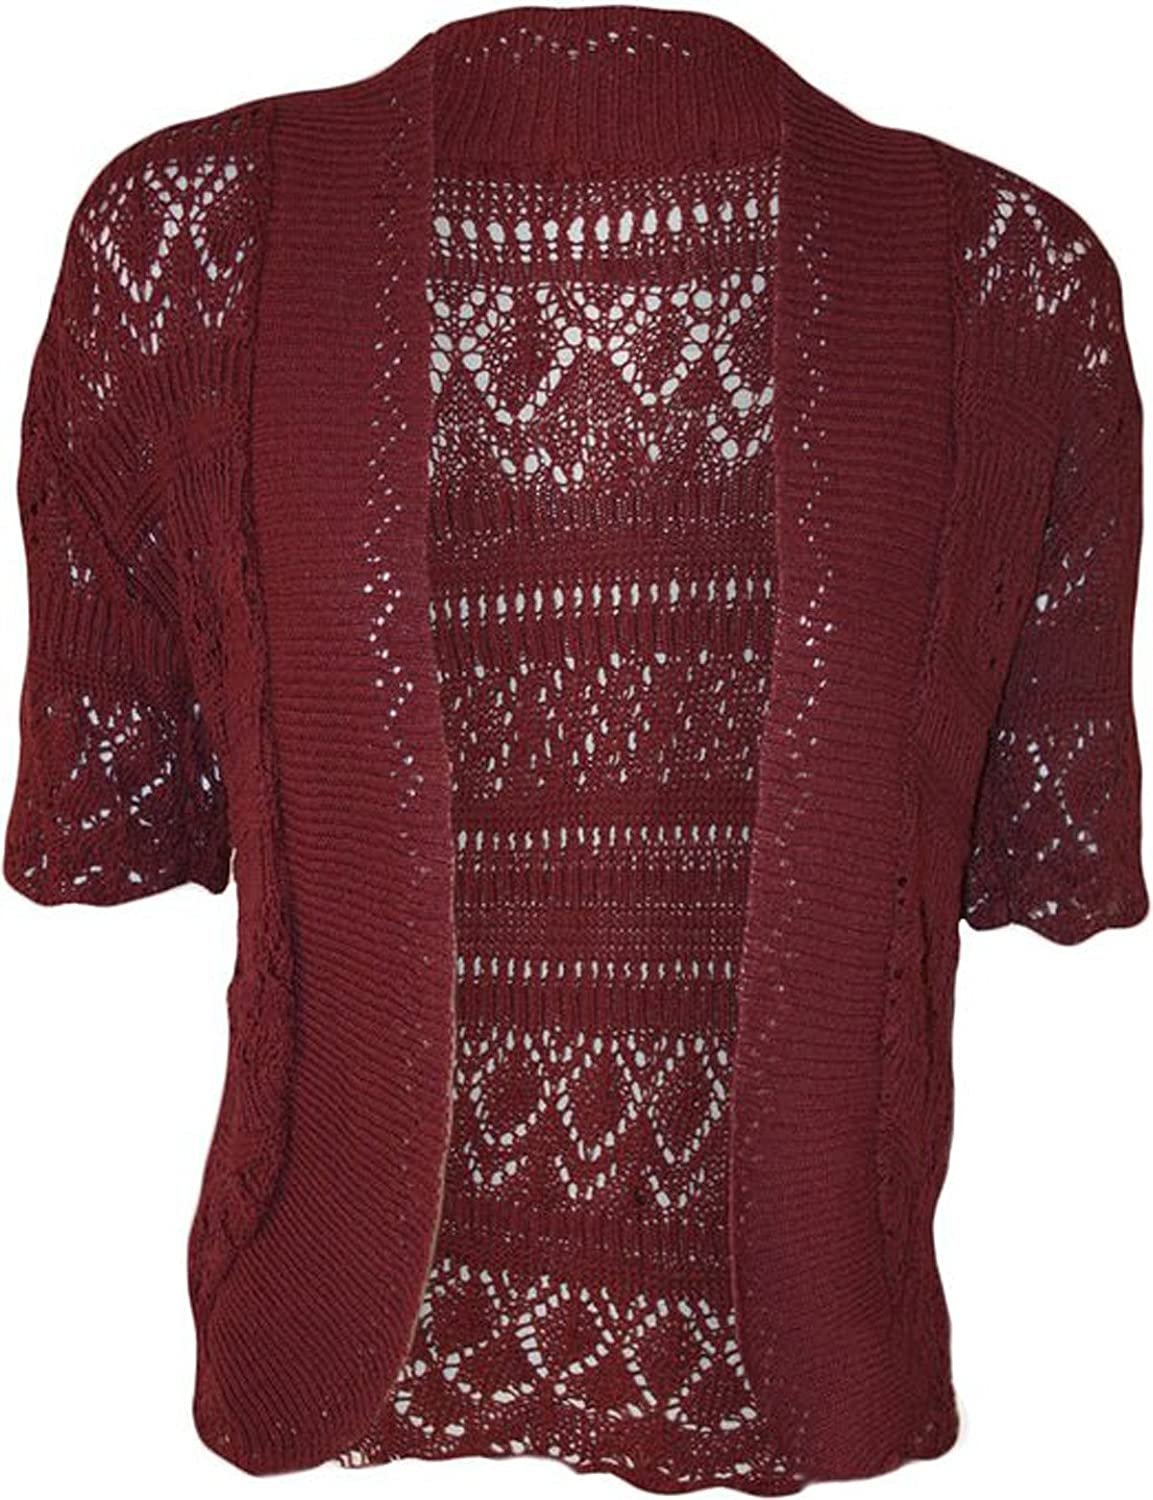 FashionMark Women's Plus Size Crochet Knitted Short Sleeve Cardigan